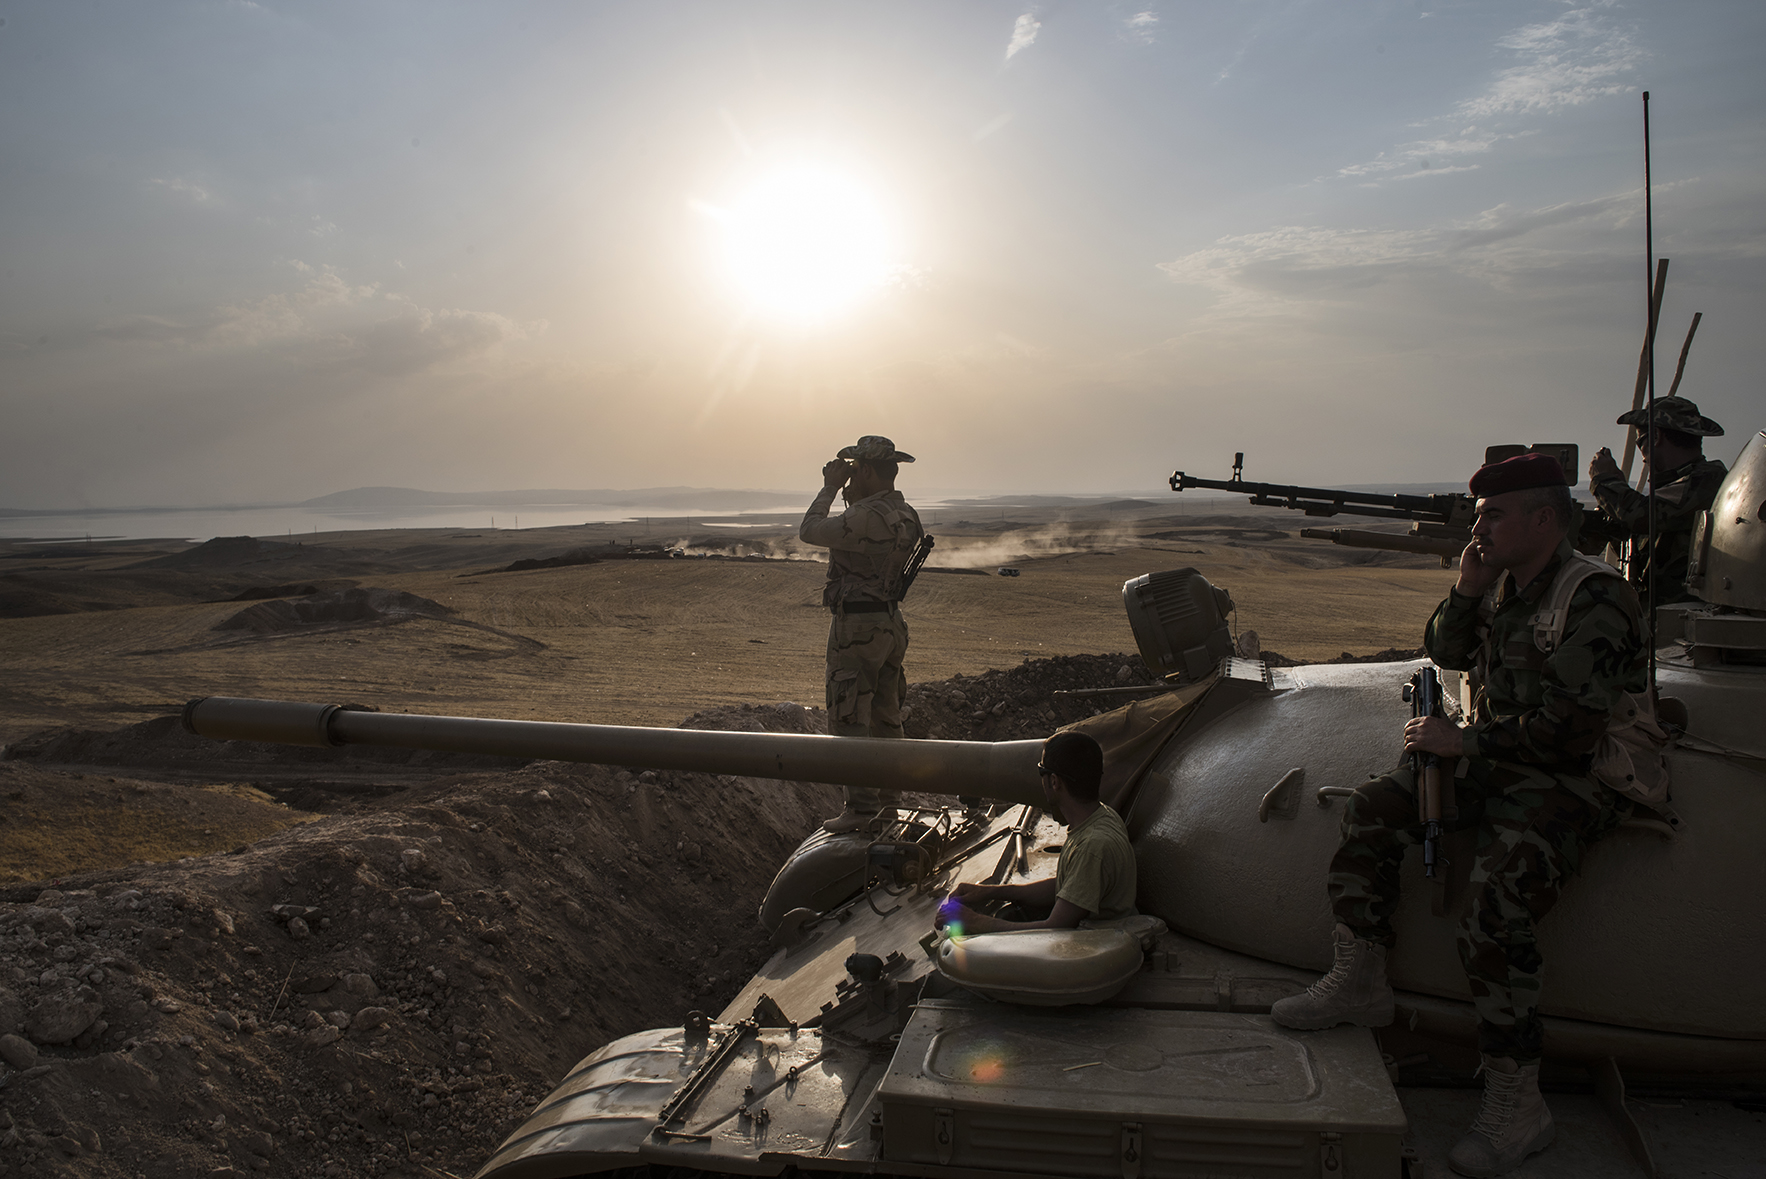 Kurdish Peshmerga forces stand in overwatch positions near the Mosul Dam in Northern Iraq, August 18, 2014. Iraqi officials said on Monday that Kurdish and Iraqi forces were on the verge of reclaiming control of the strategic Mosul Dam from the Sunni militants who seized it two weeks ago.  The American military is helping fight IS with targeted airstrikes on IS positions near the Mosul Dam, and Peshmerga are fighting on the ground.